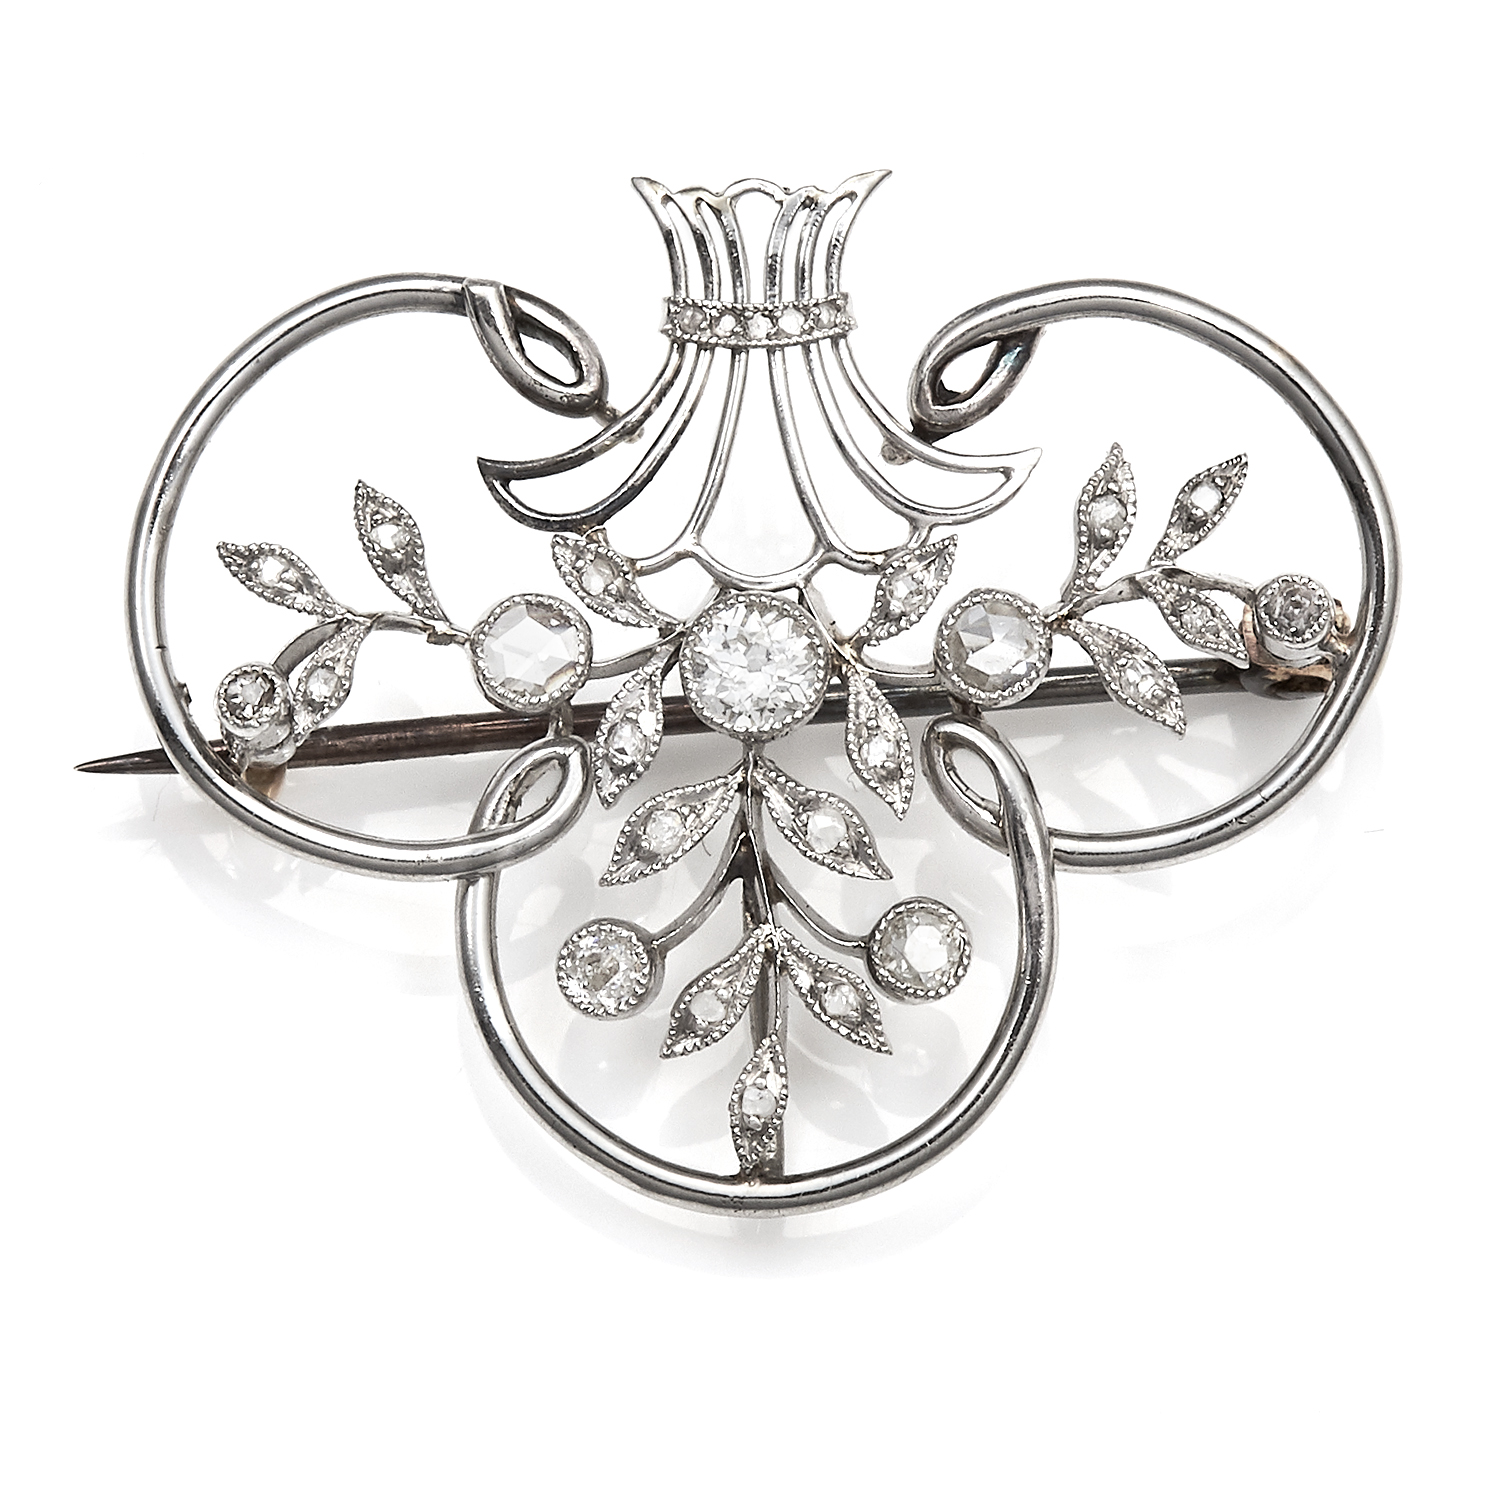 Los 30 - AN ANTIQUE DIAMOND PENDANT / BROOCH, LATE 19TH CENTURY in platinum and yellow gold, set with round